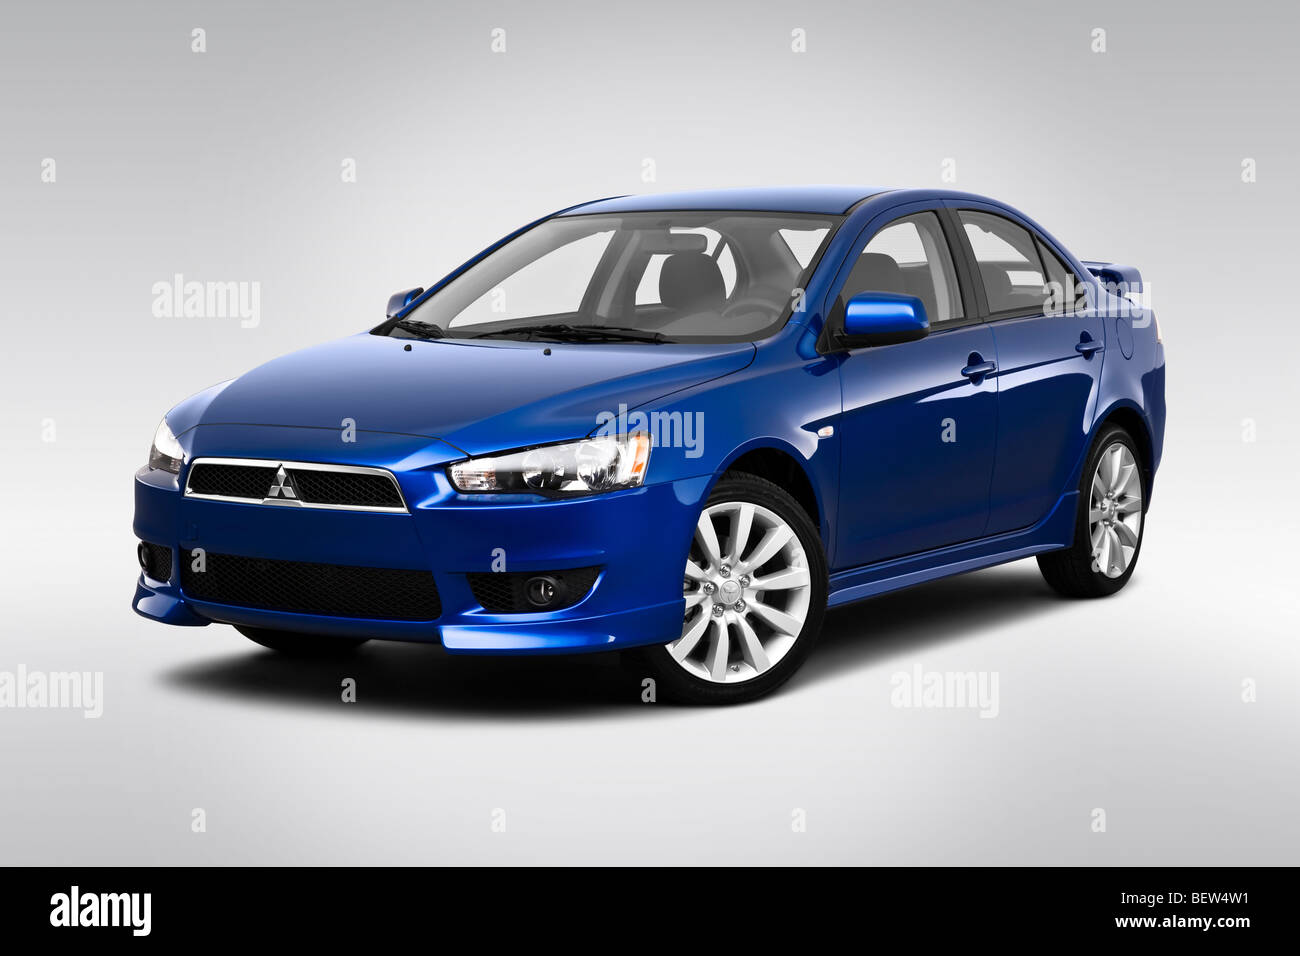 2010 mitsubishi lancer gts in blue front angle view stock photo royalty free image 26368189. Black Bedroom Furniture Sets. Home Design Ideas